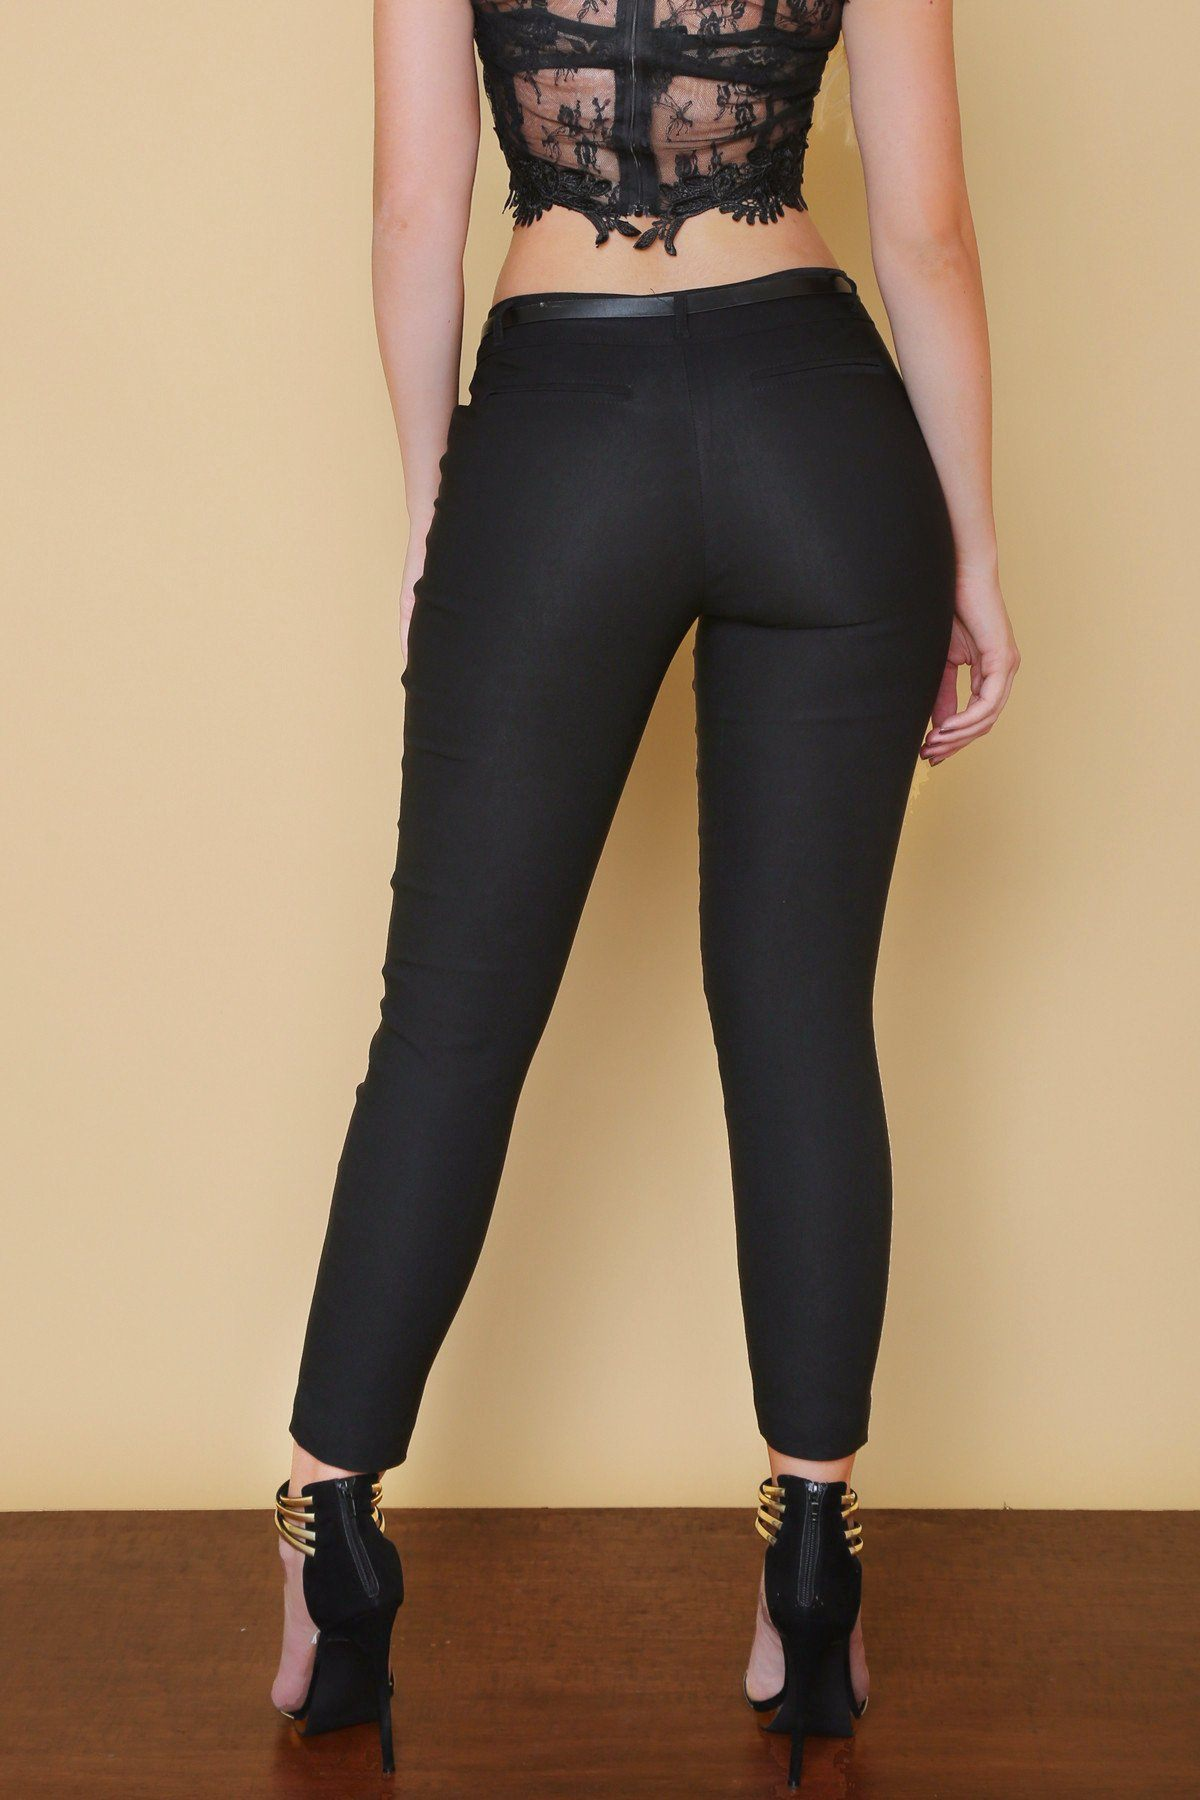 Pants - Get Down To Business Pants BLACK - RESTOCKED